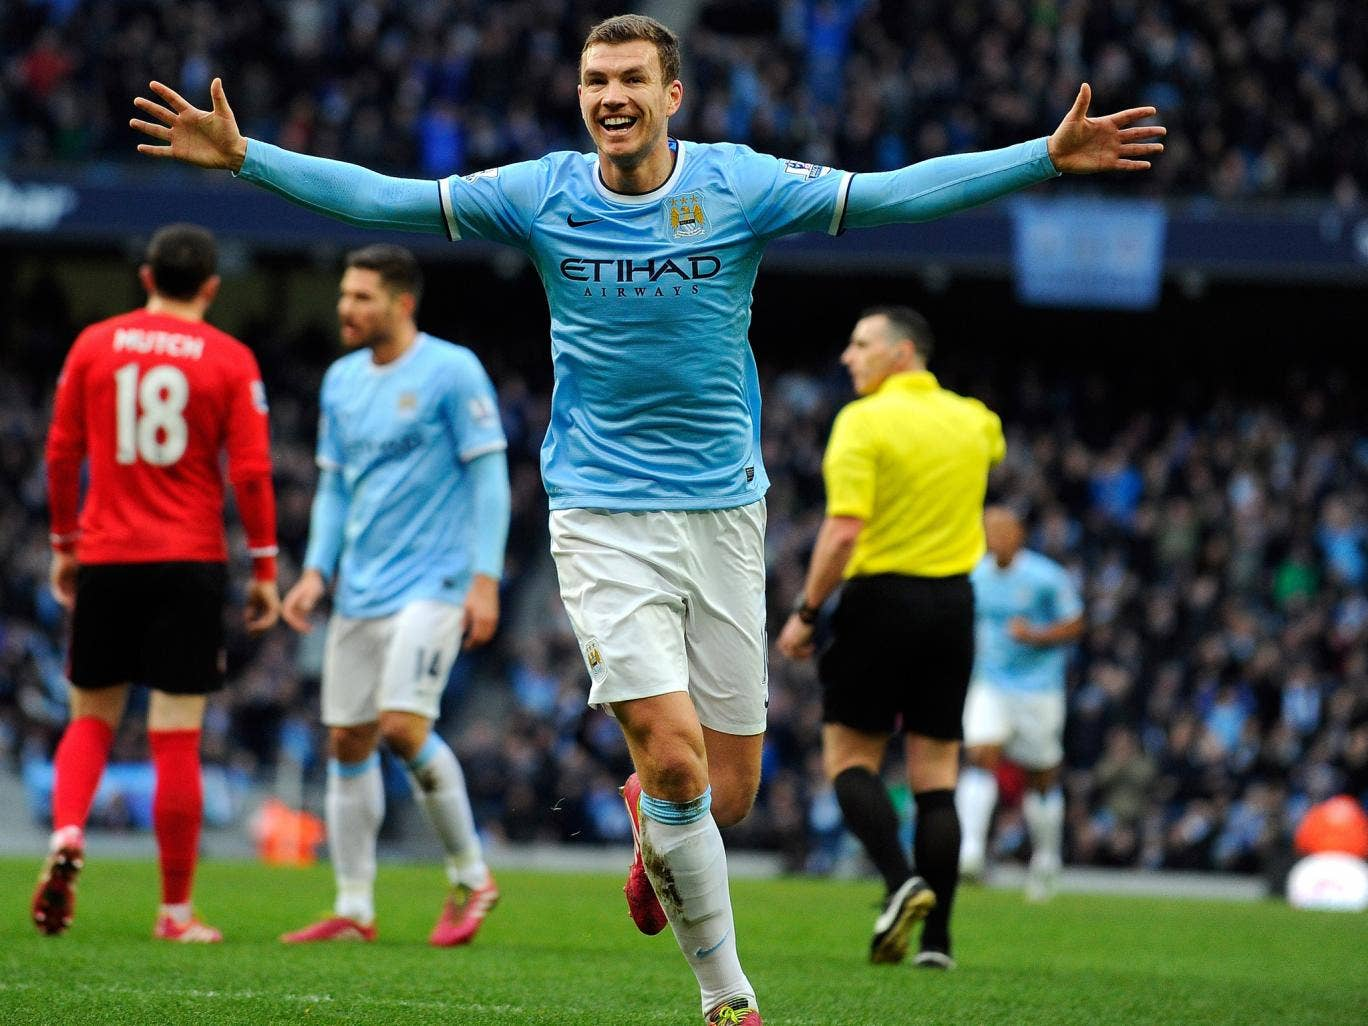 Manchester City striker Edin Dzeko celebrates after scoring their 100th goal of the season in the win over Cardiff